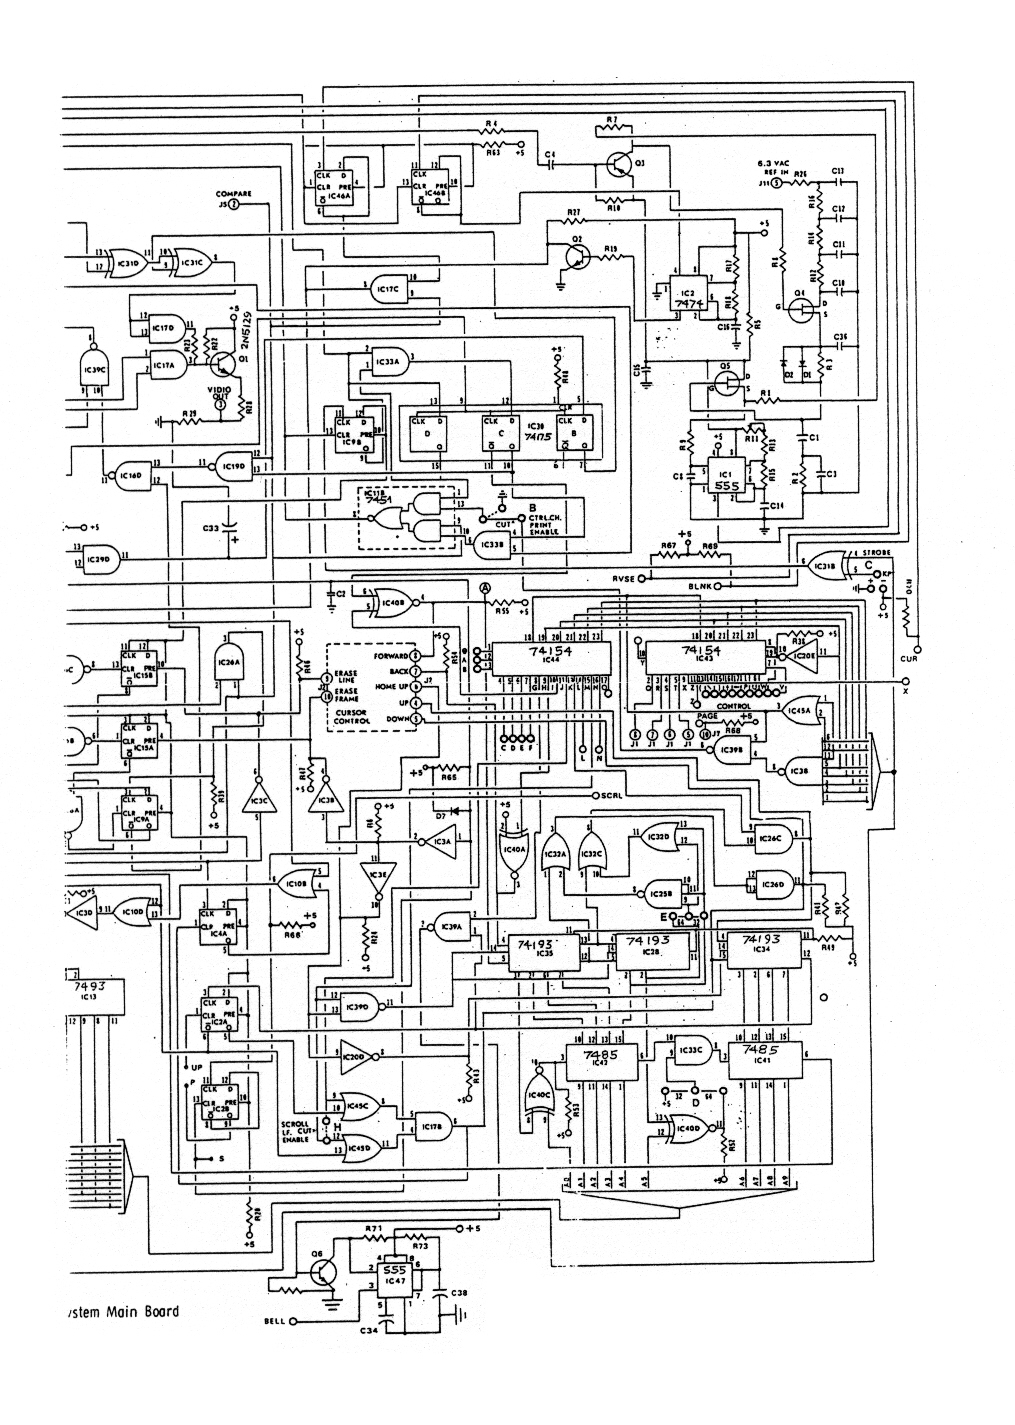 hight resolution of 1996 international 4700 wiring diagram simple wiring diagram rh 45 mara cujas de 2001 international 4700